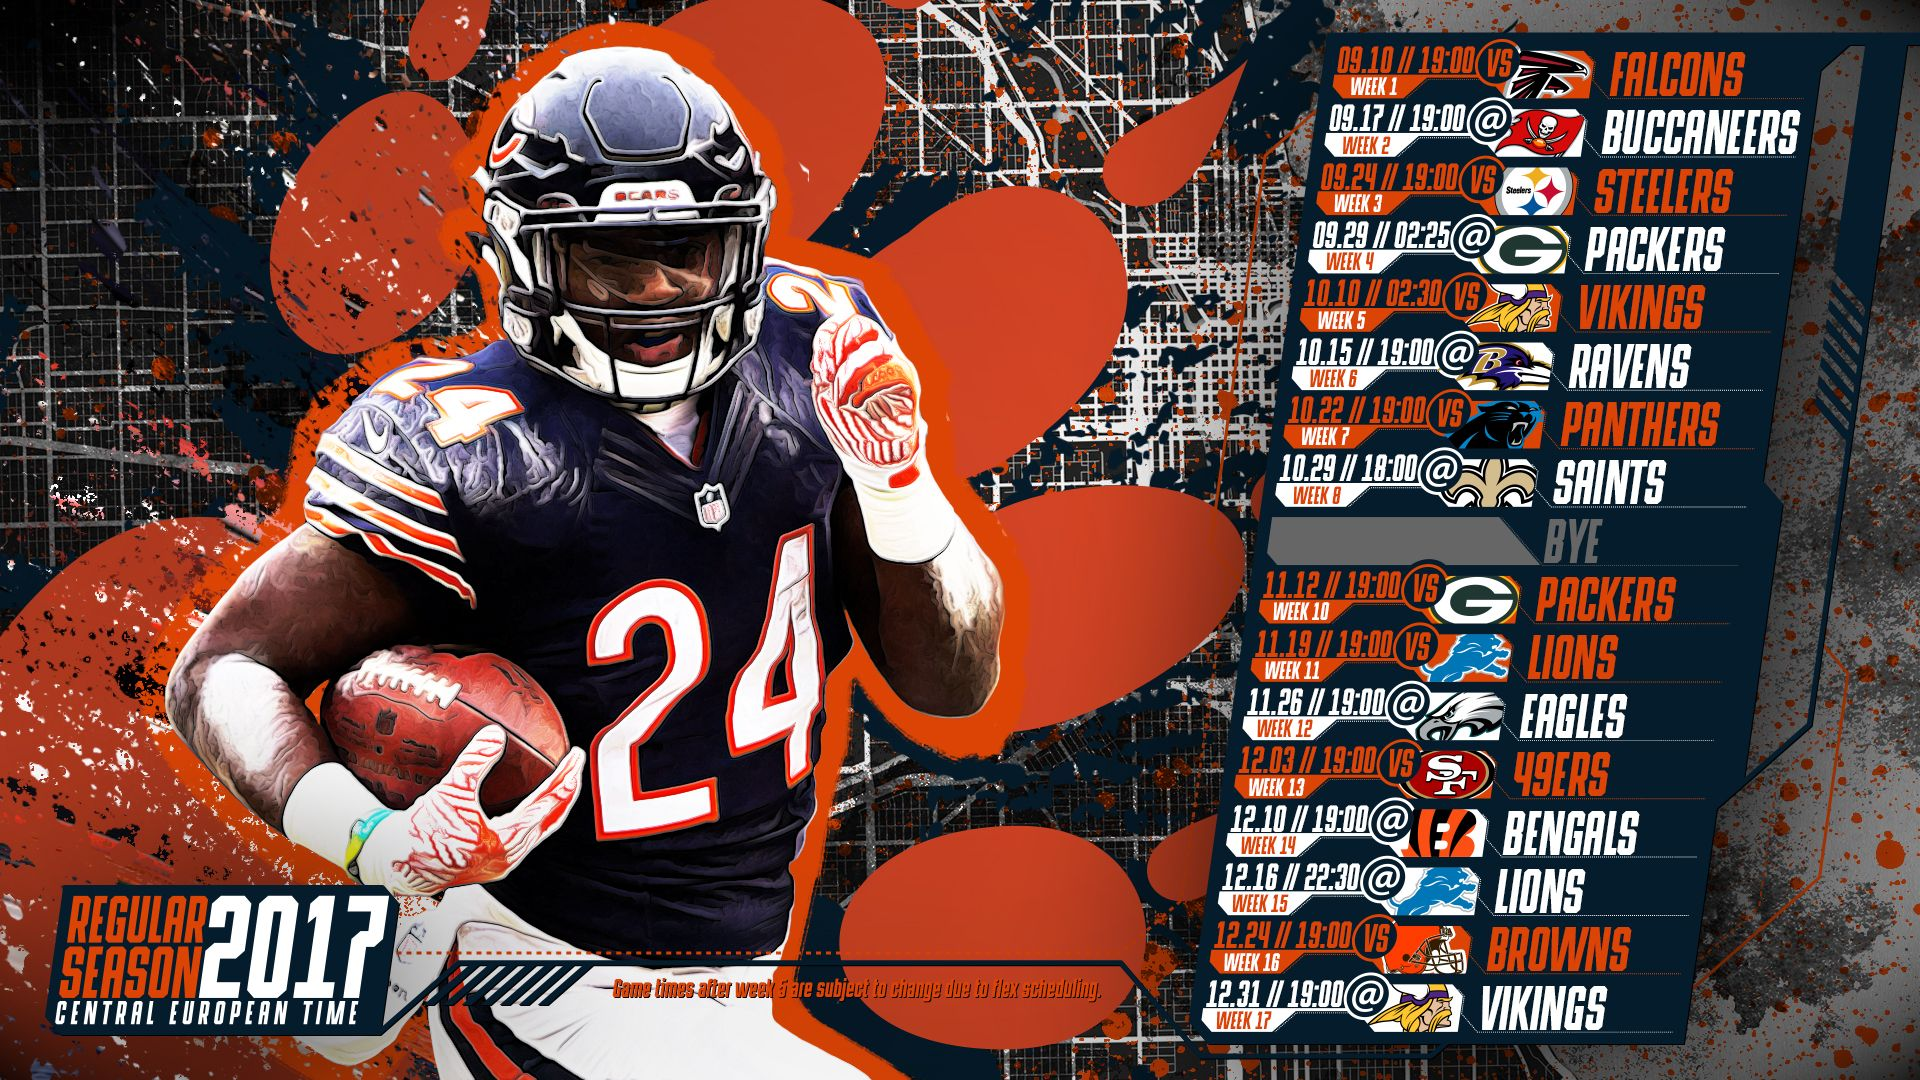 Schedule Wallpaper For The Chicago Bears Regular Season 2017 Central European Time Made By Tgersdiy Chicago Bears Chicago Bear